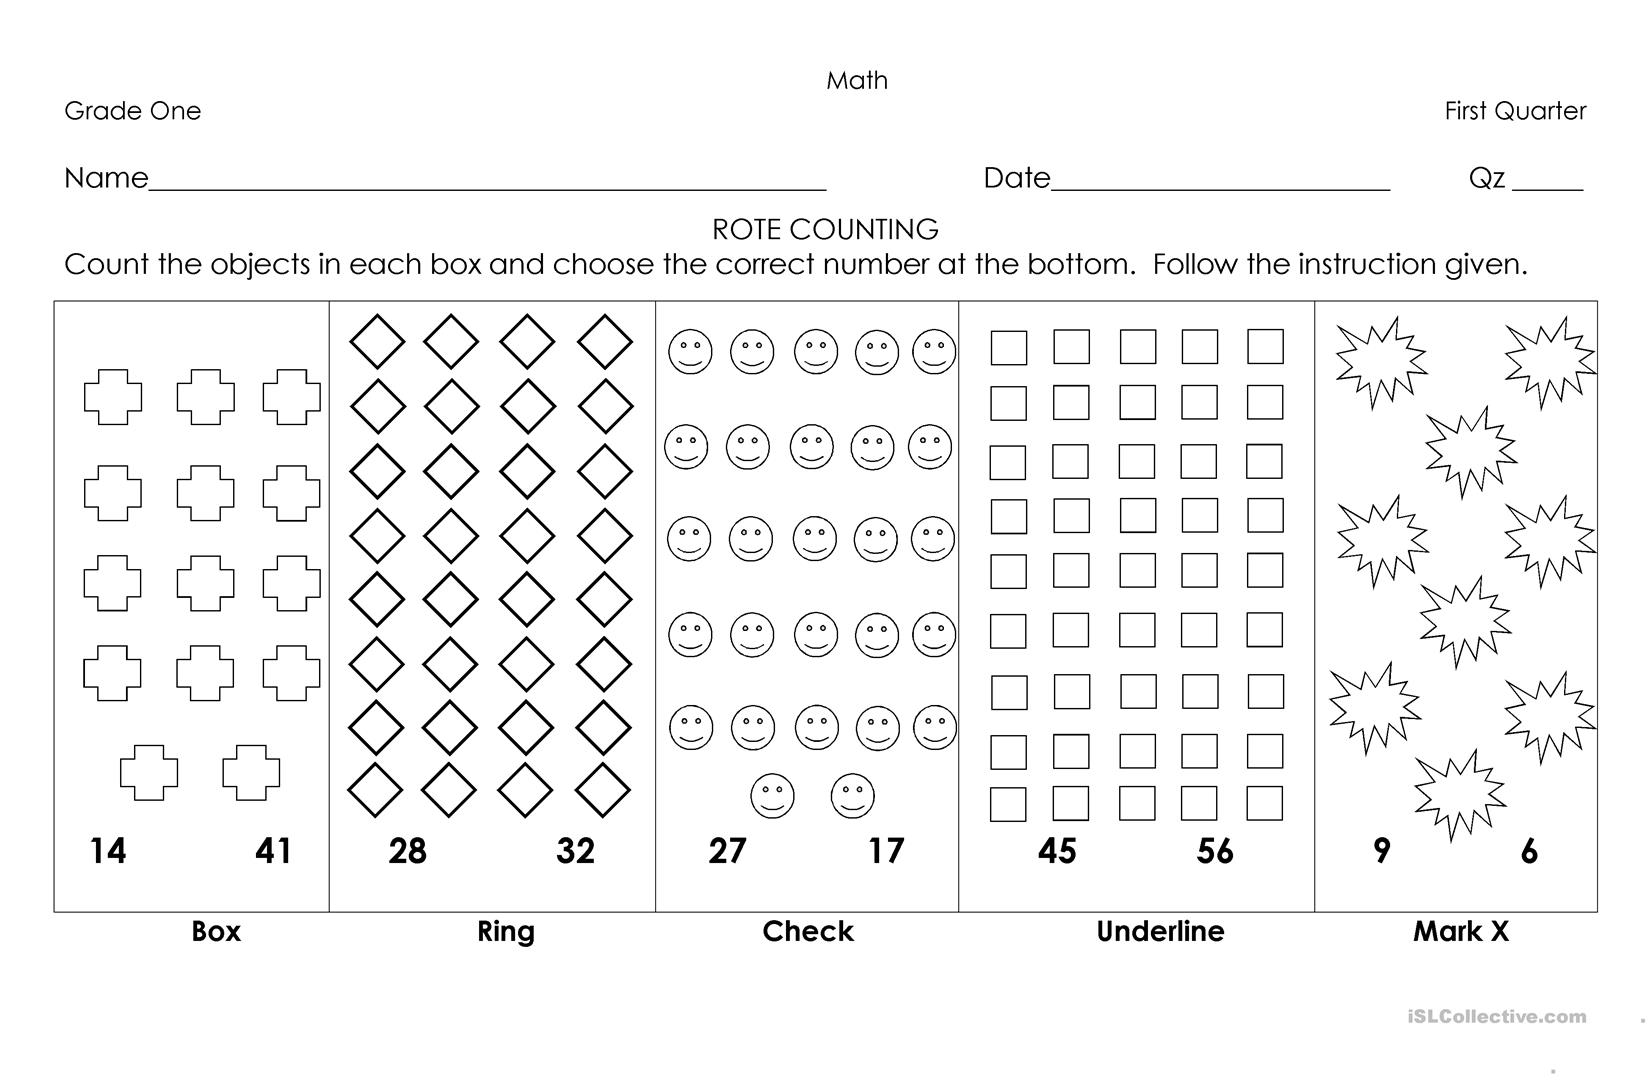 Worksheets Printable Counting Worksheets rote counting worksheet free esl printable worksheets made by teachers counting